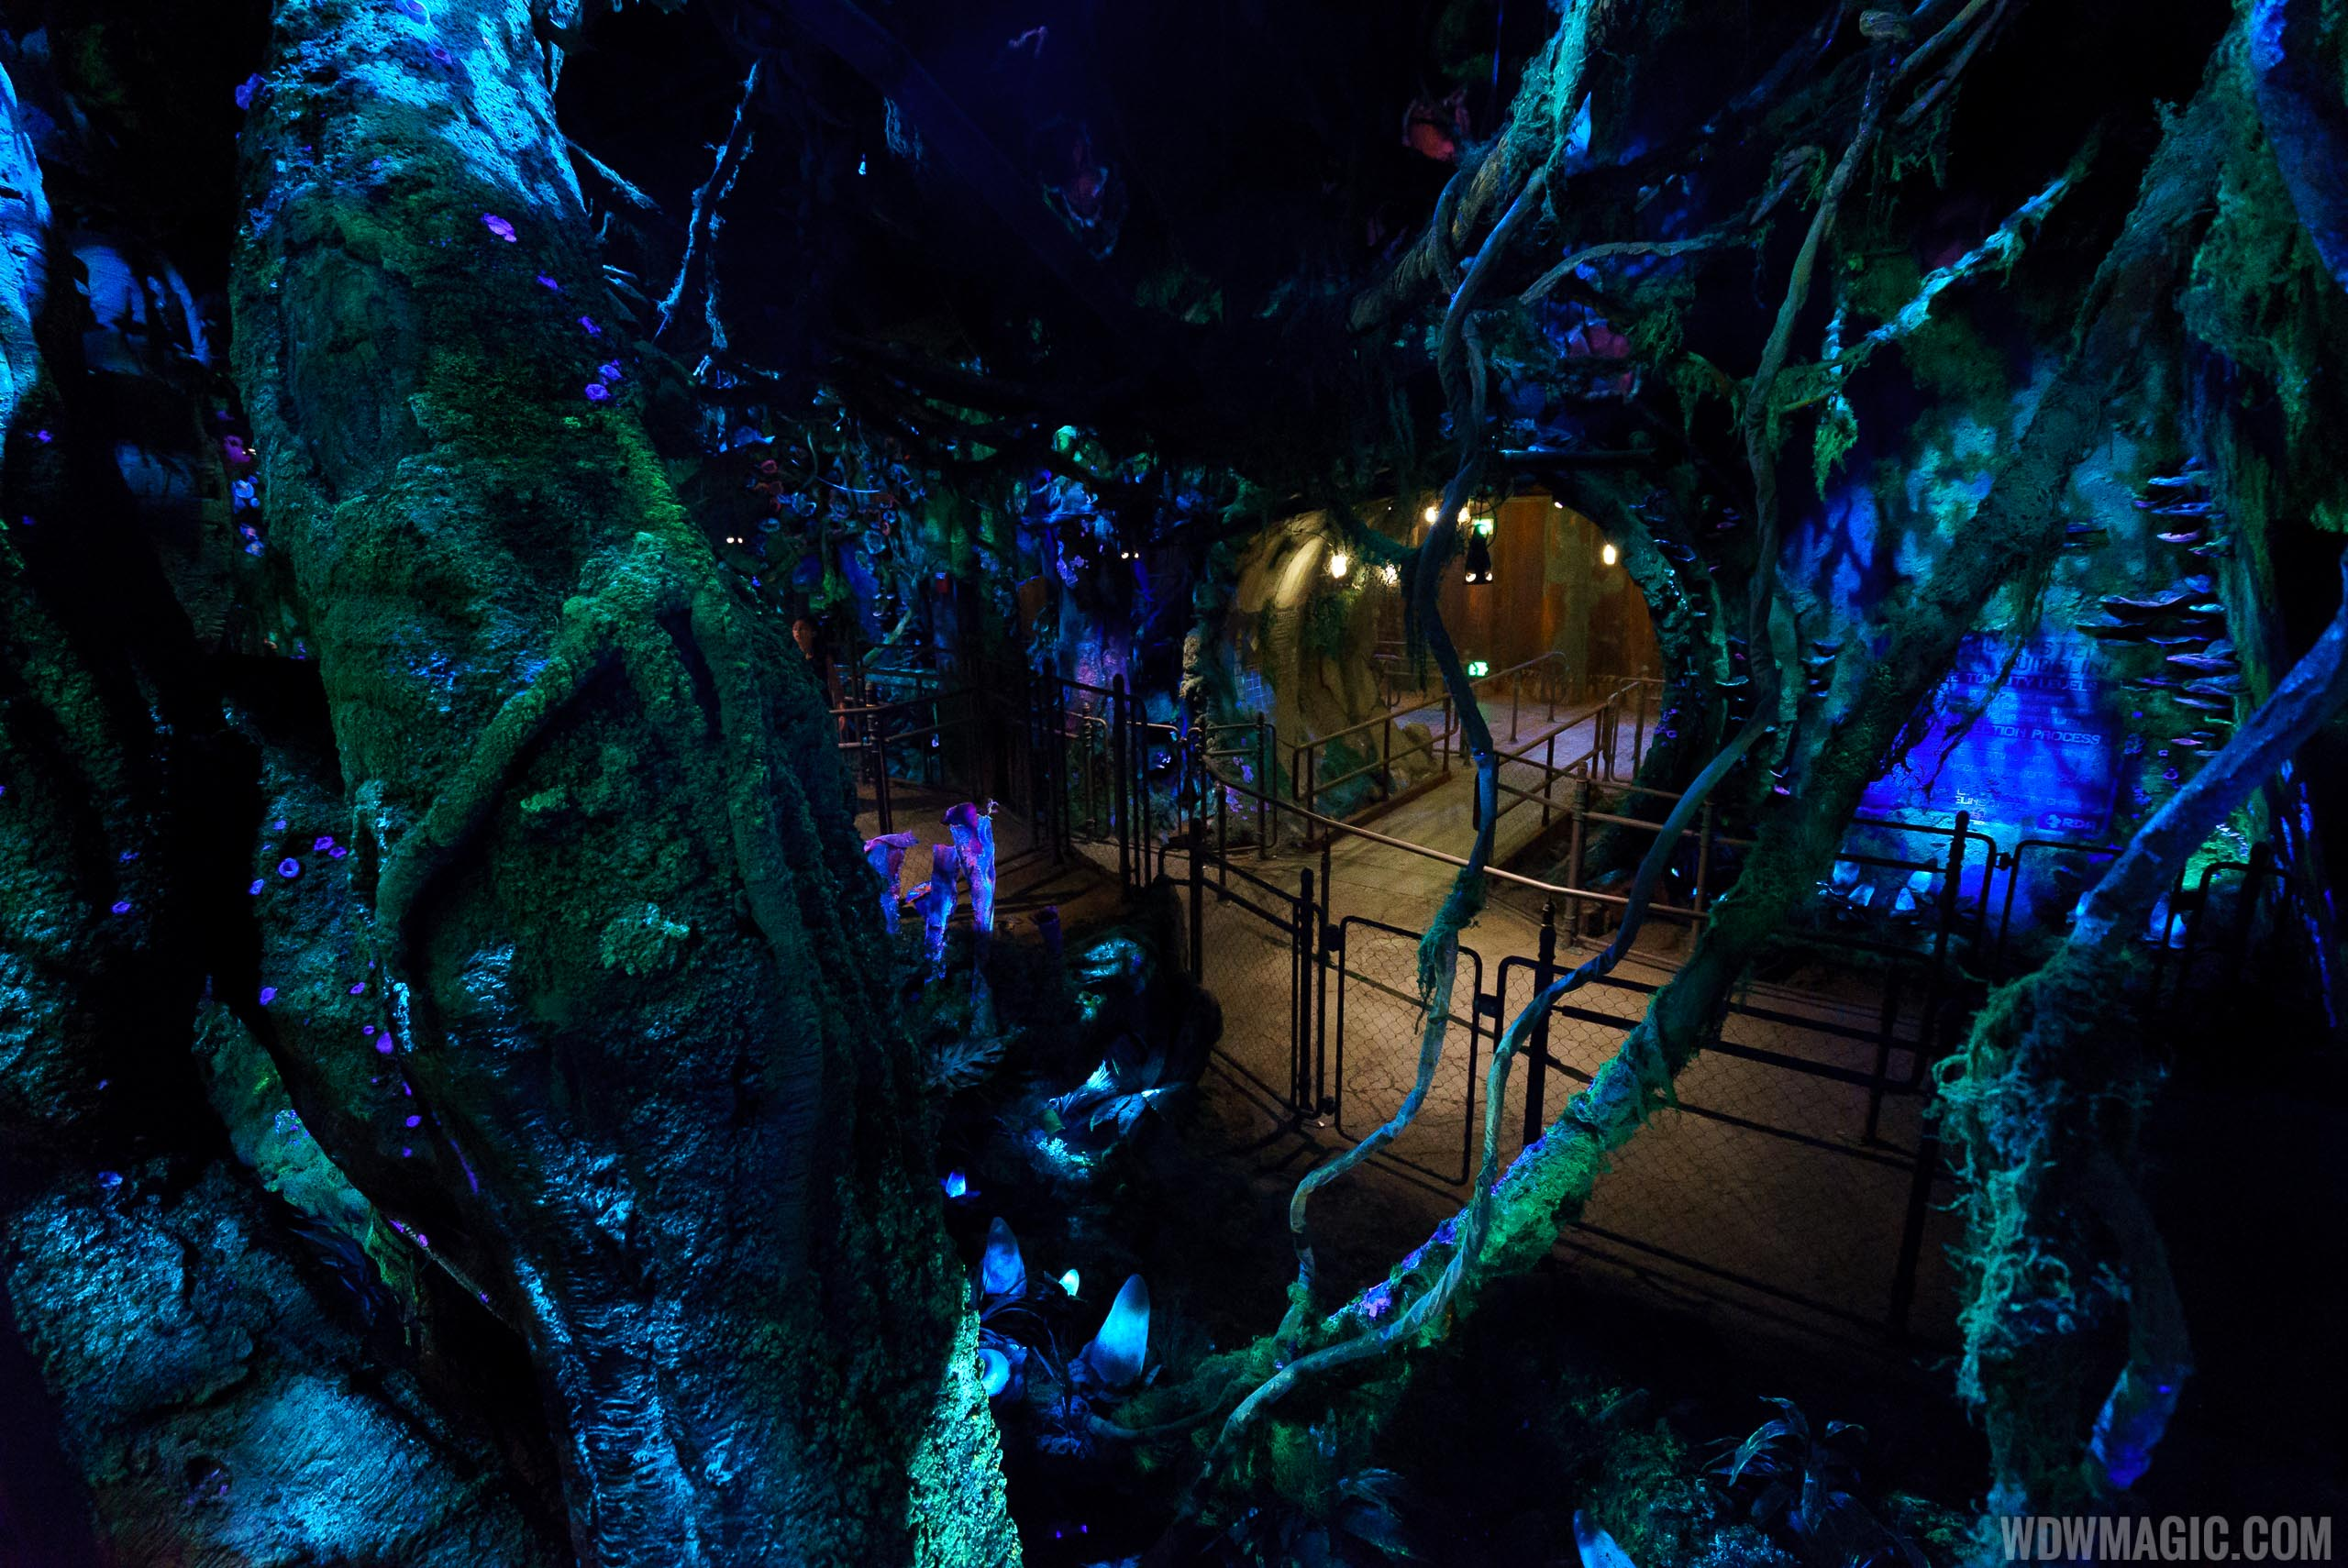 Avatar Flight of Passage queue - Looking down to the queue space